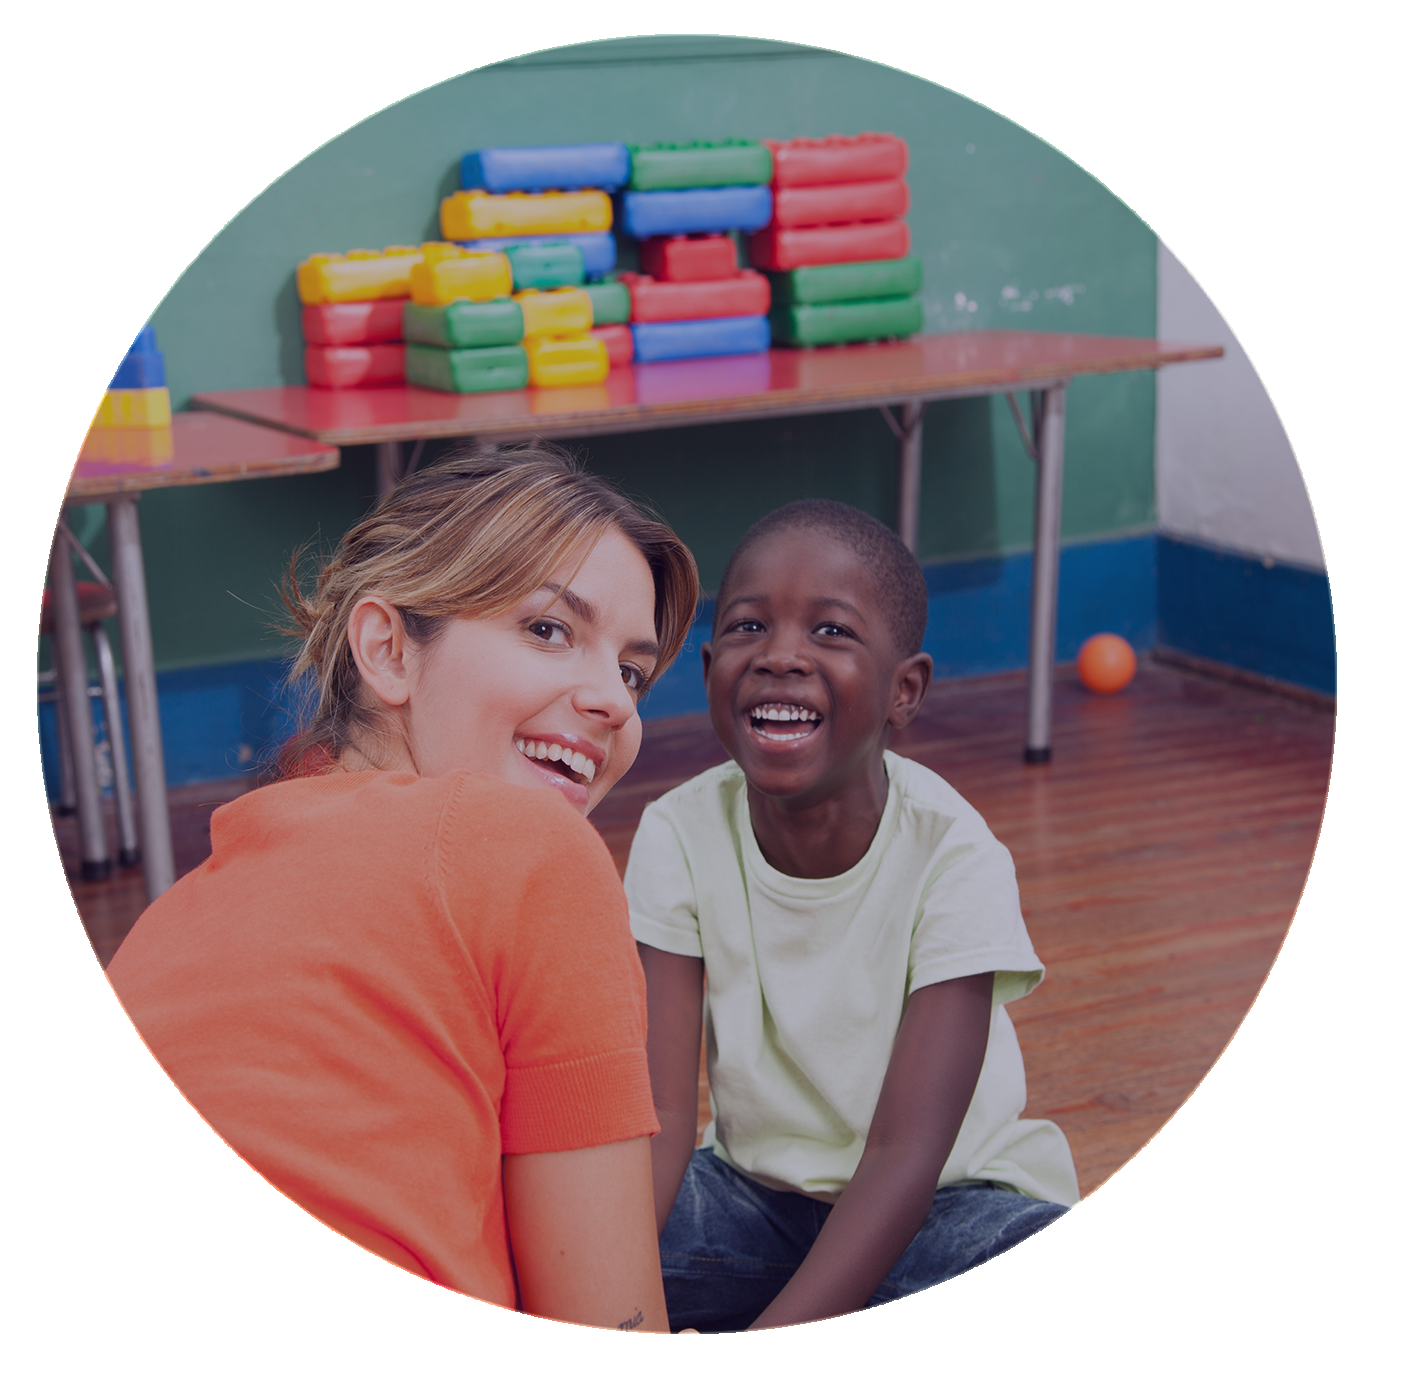 Child and caregiver smiling